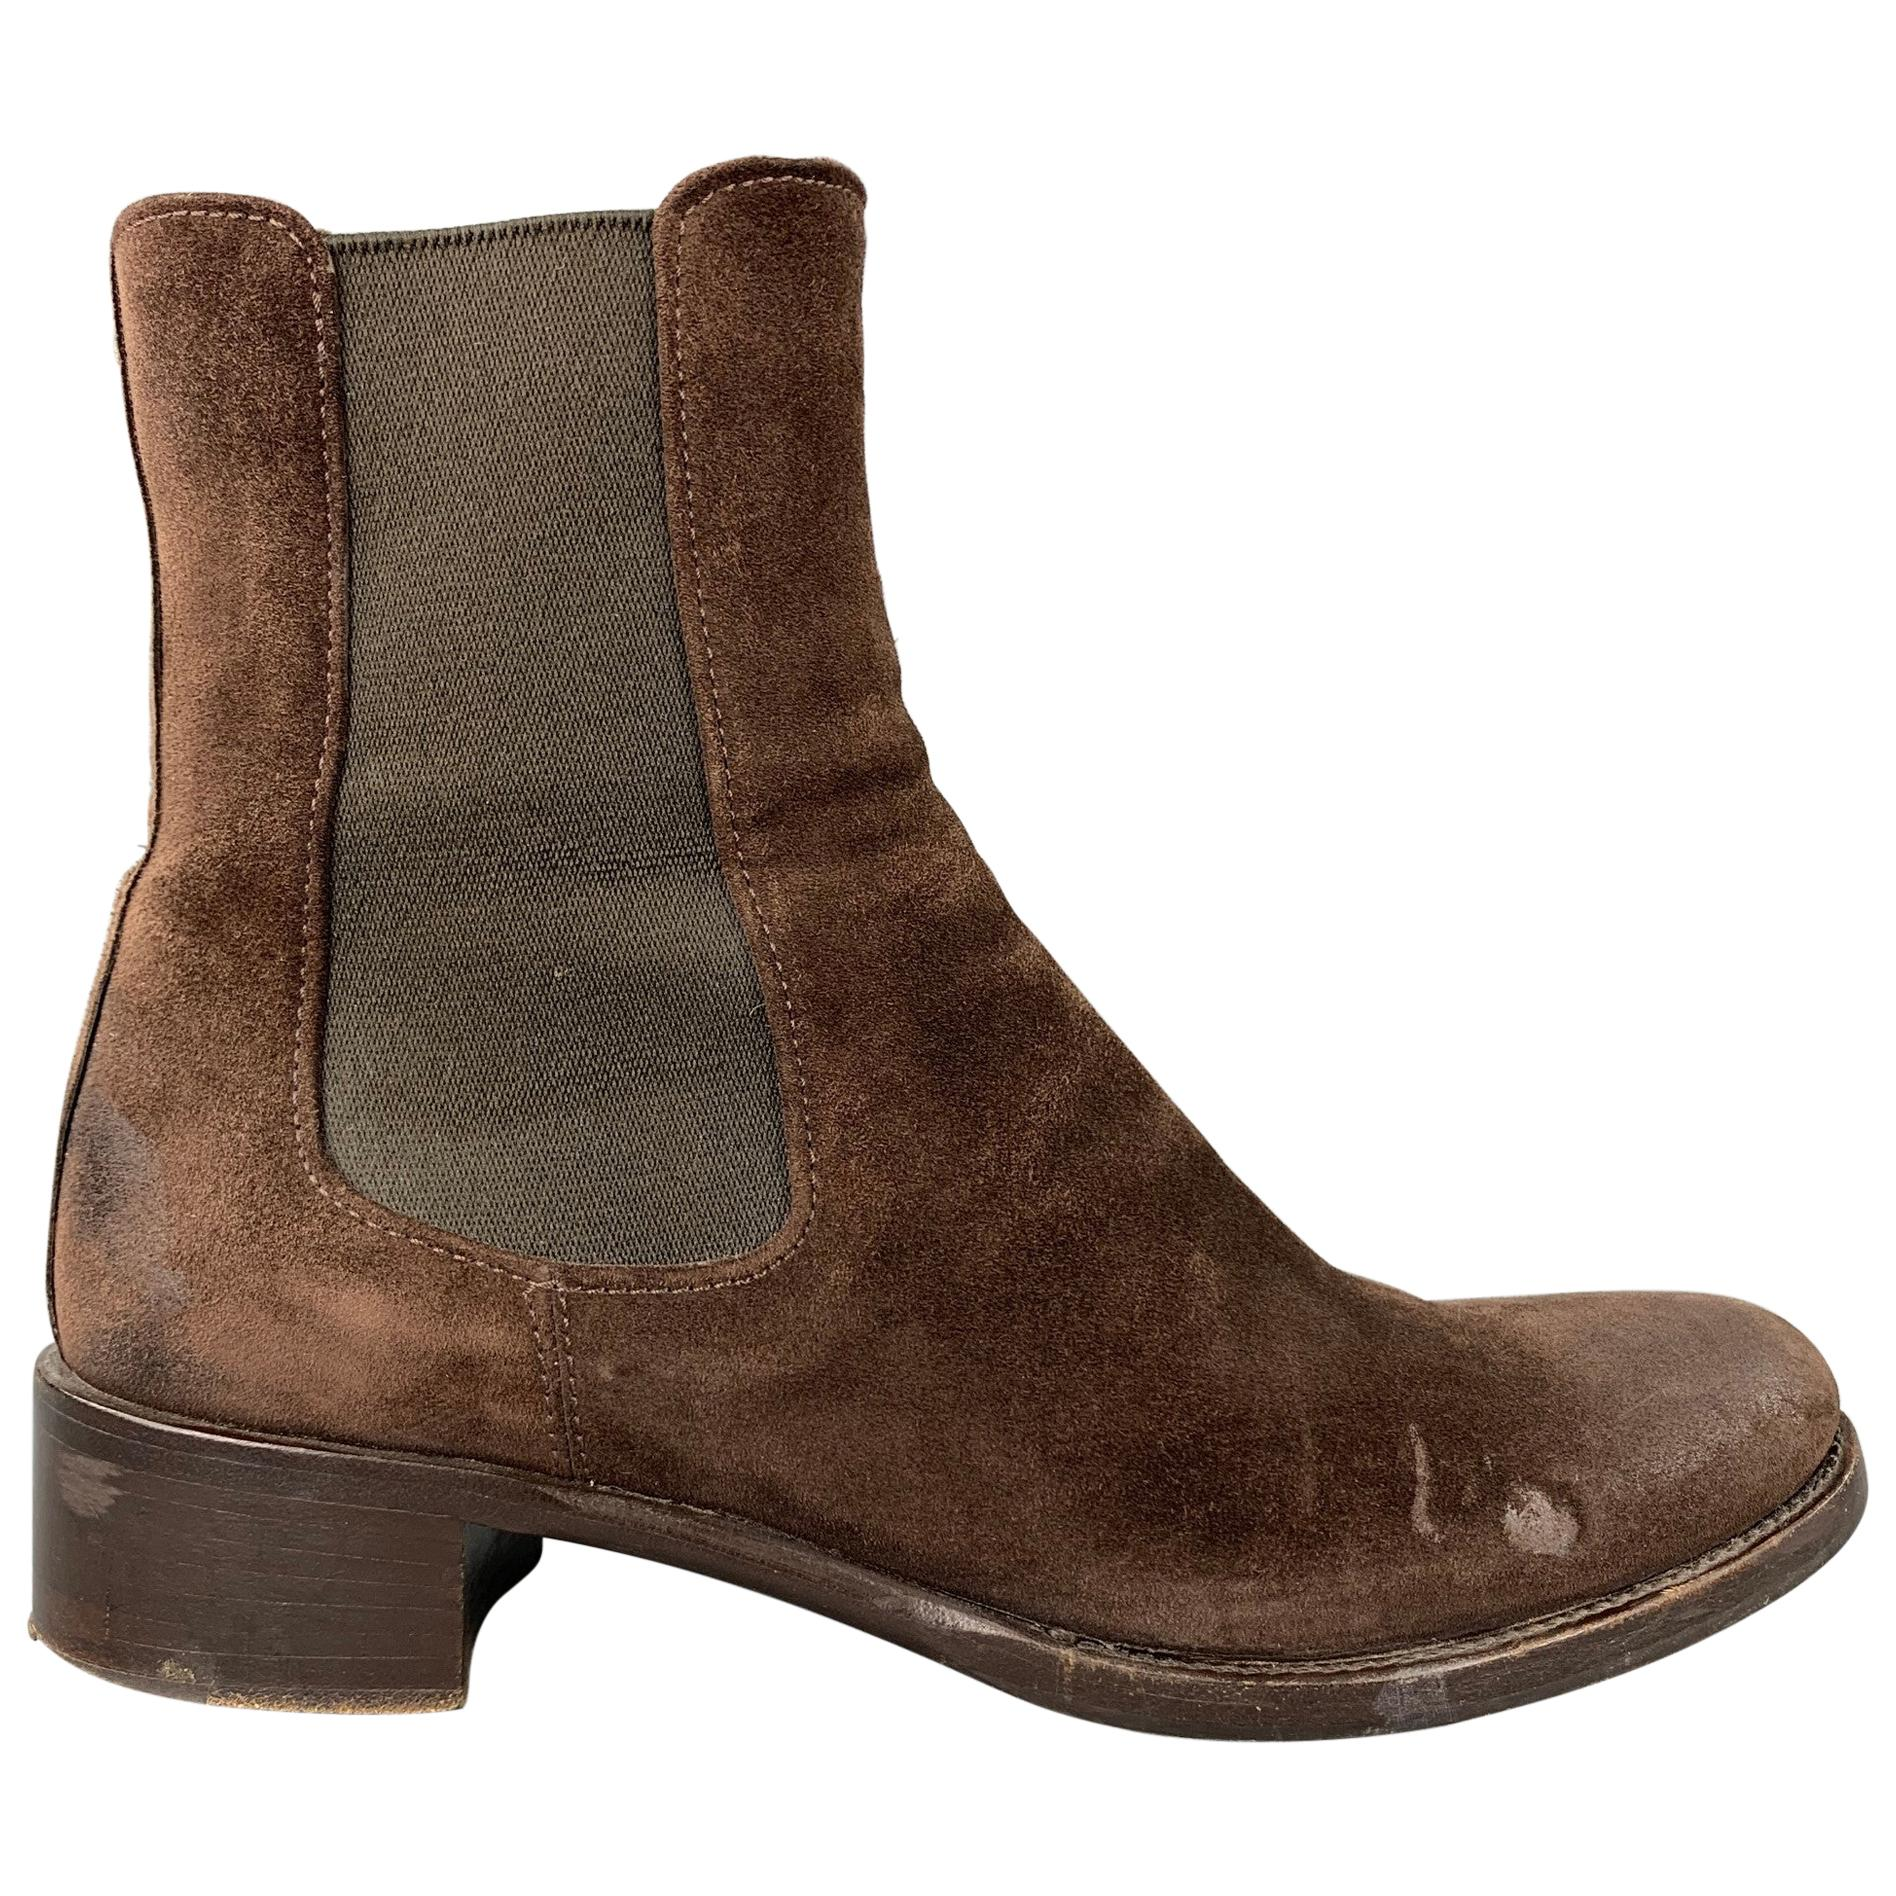 PRADA Size 6.5 Brown Suede Chunky Heel Boots